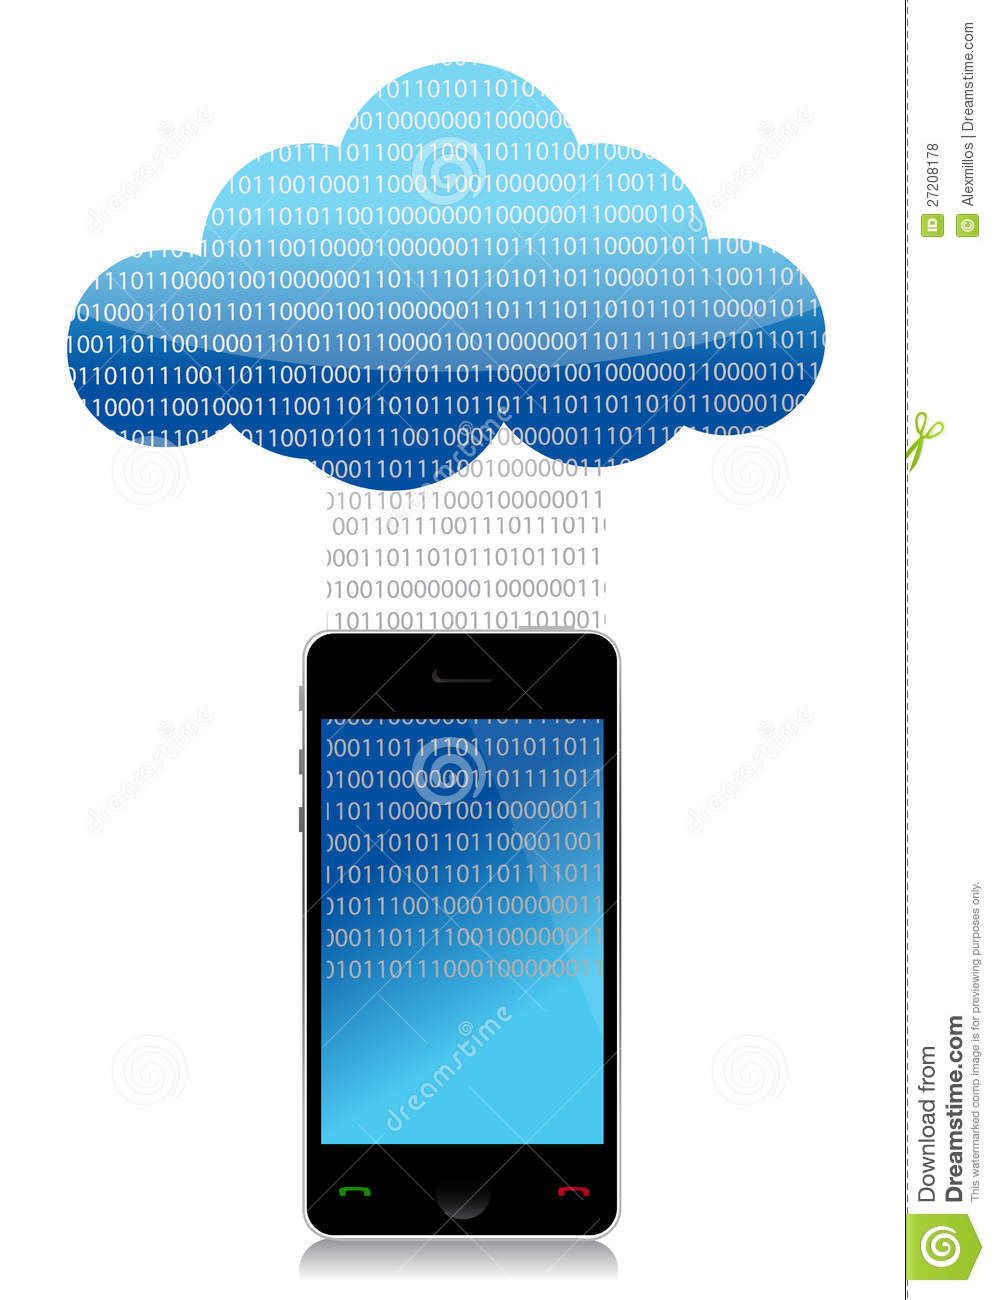 thesis on mobile cloud computing